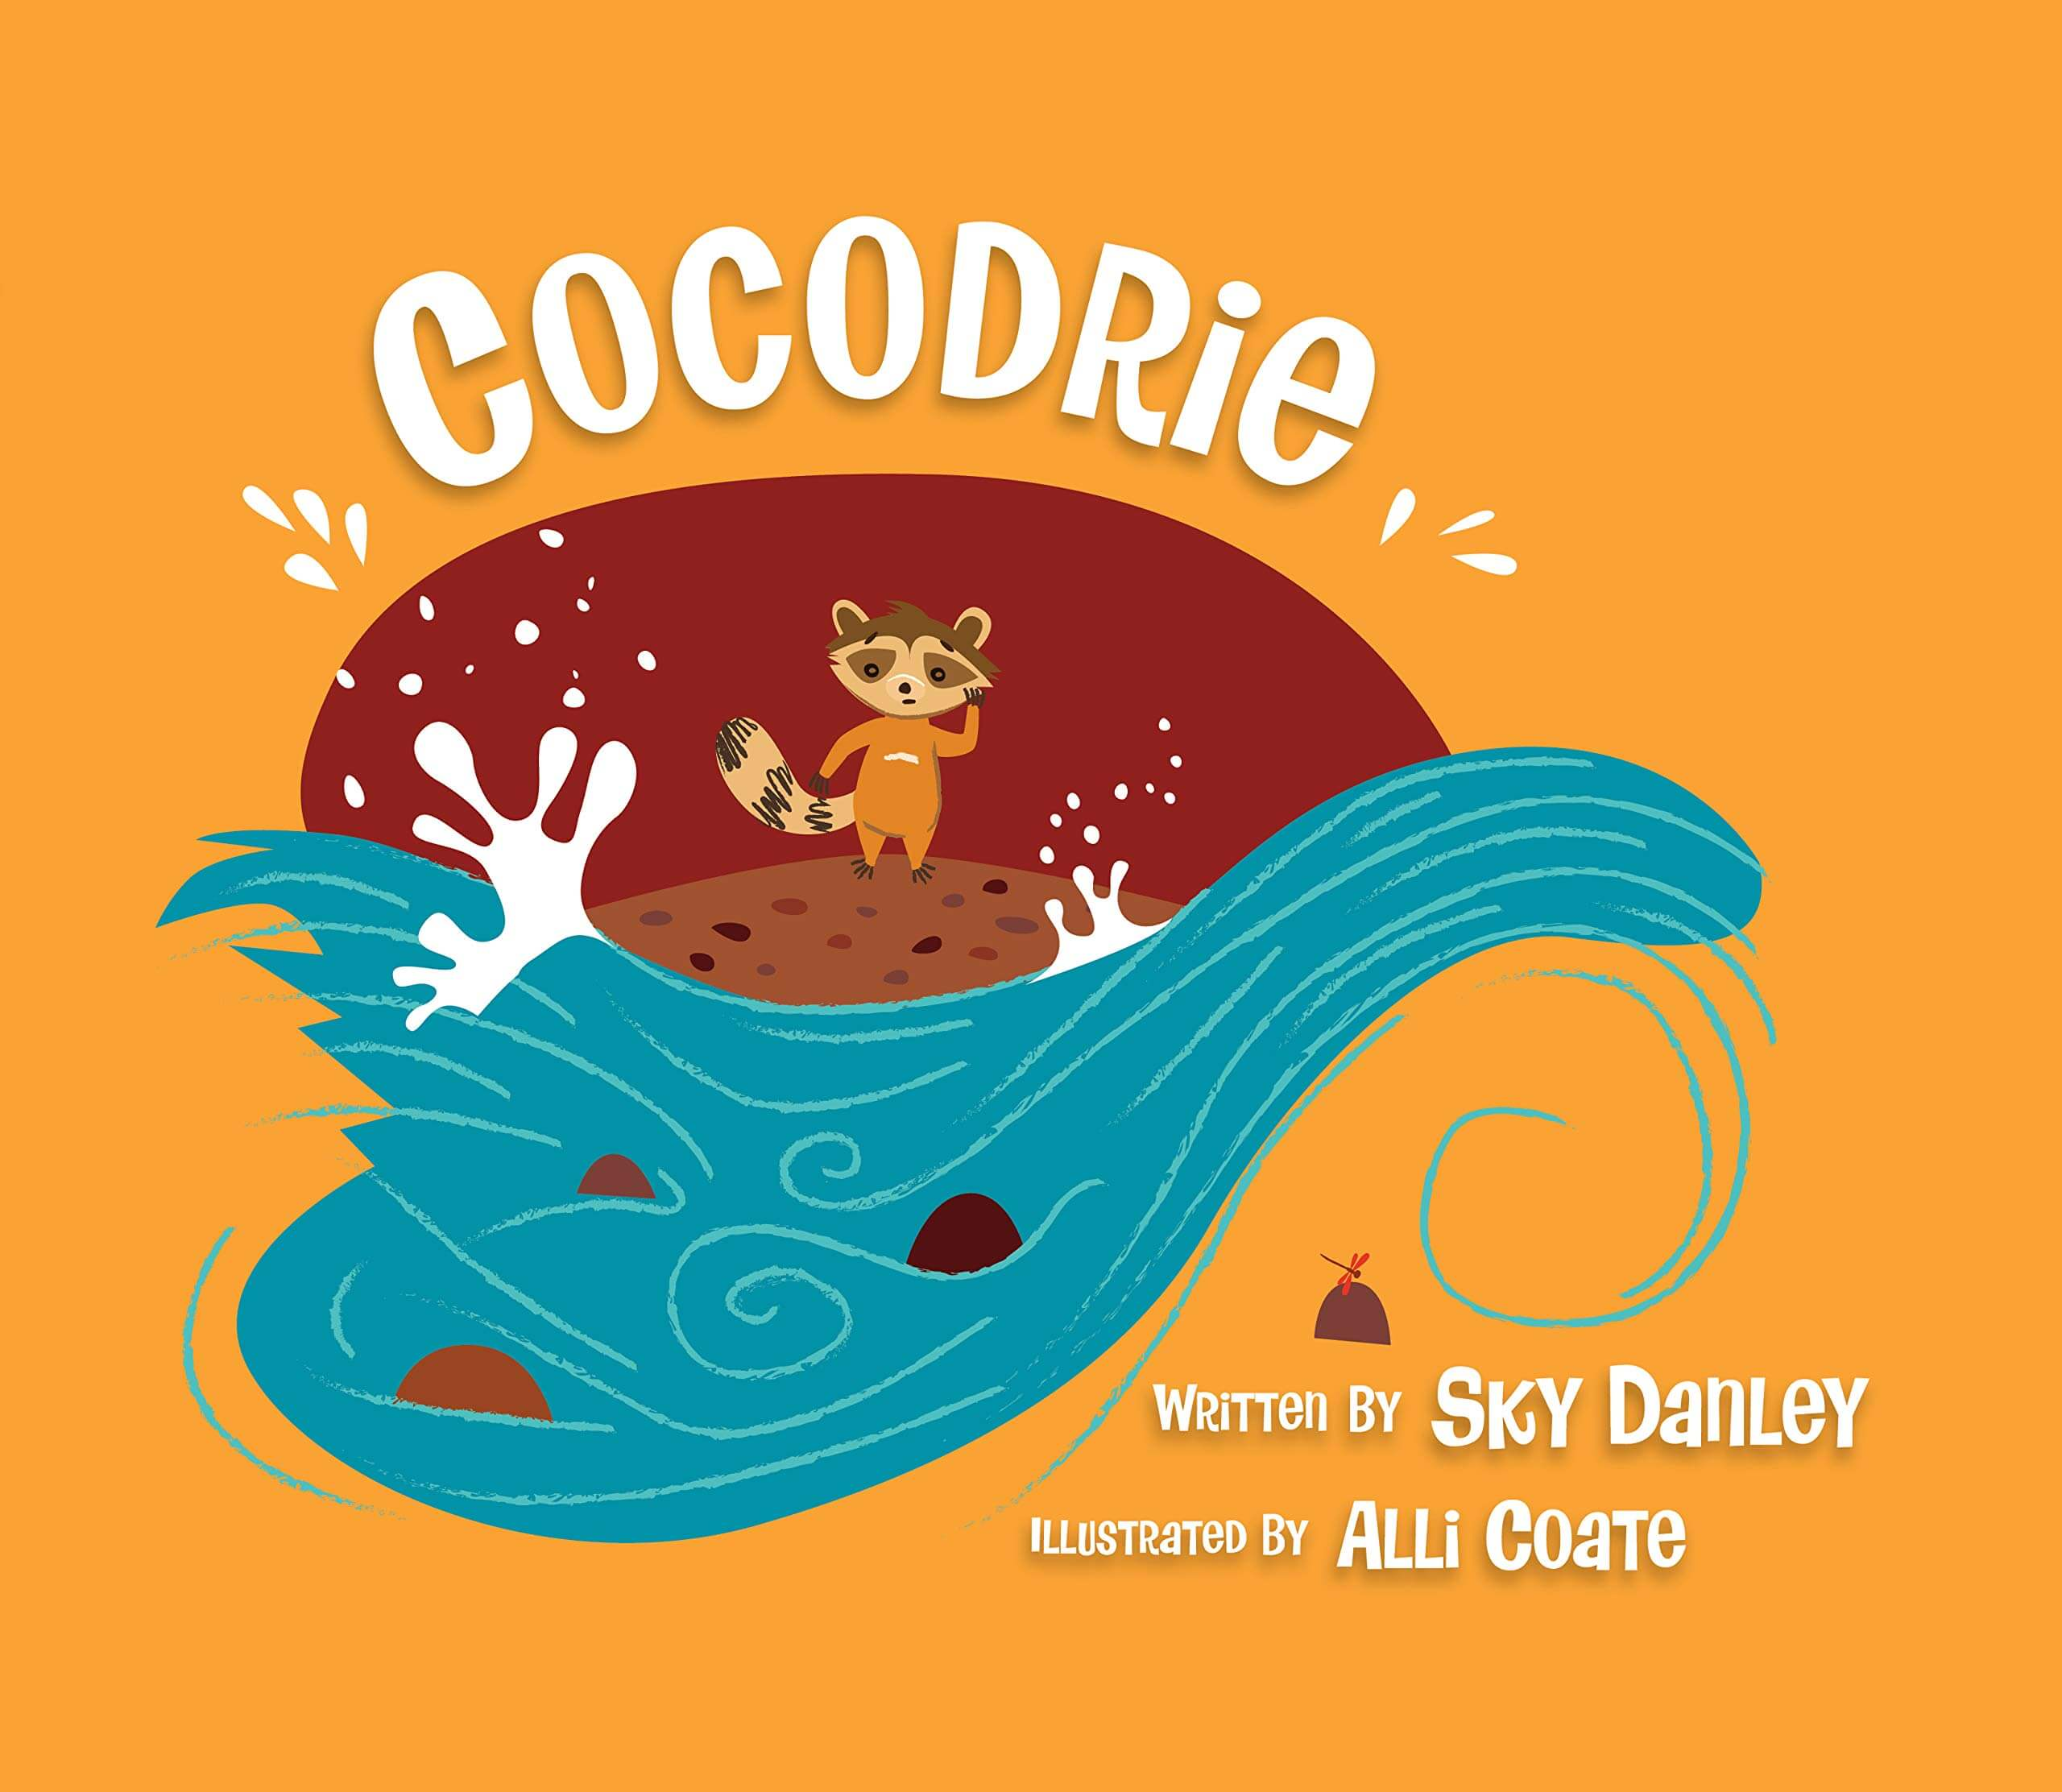 Cocodrie book cover